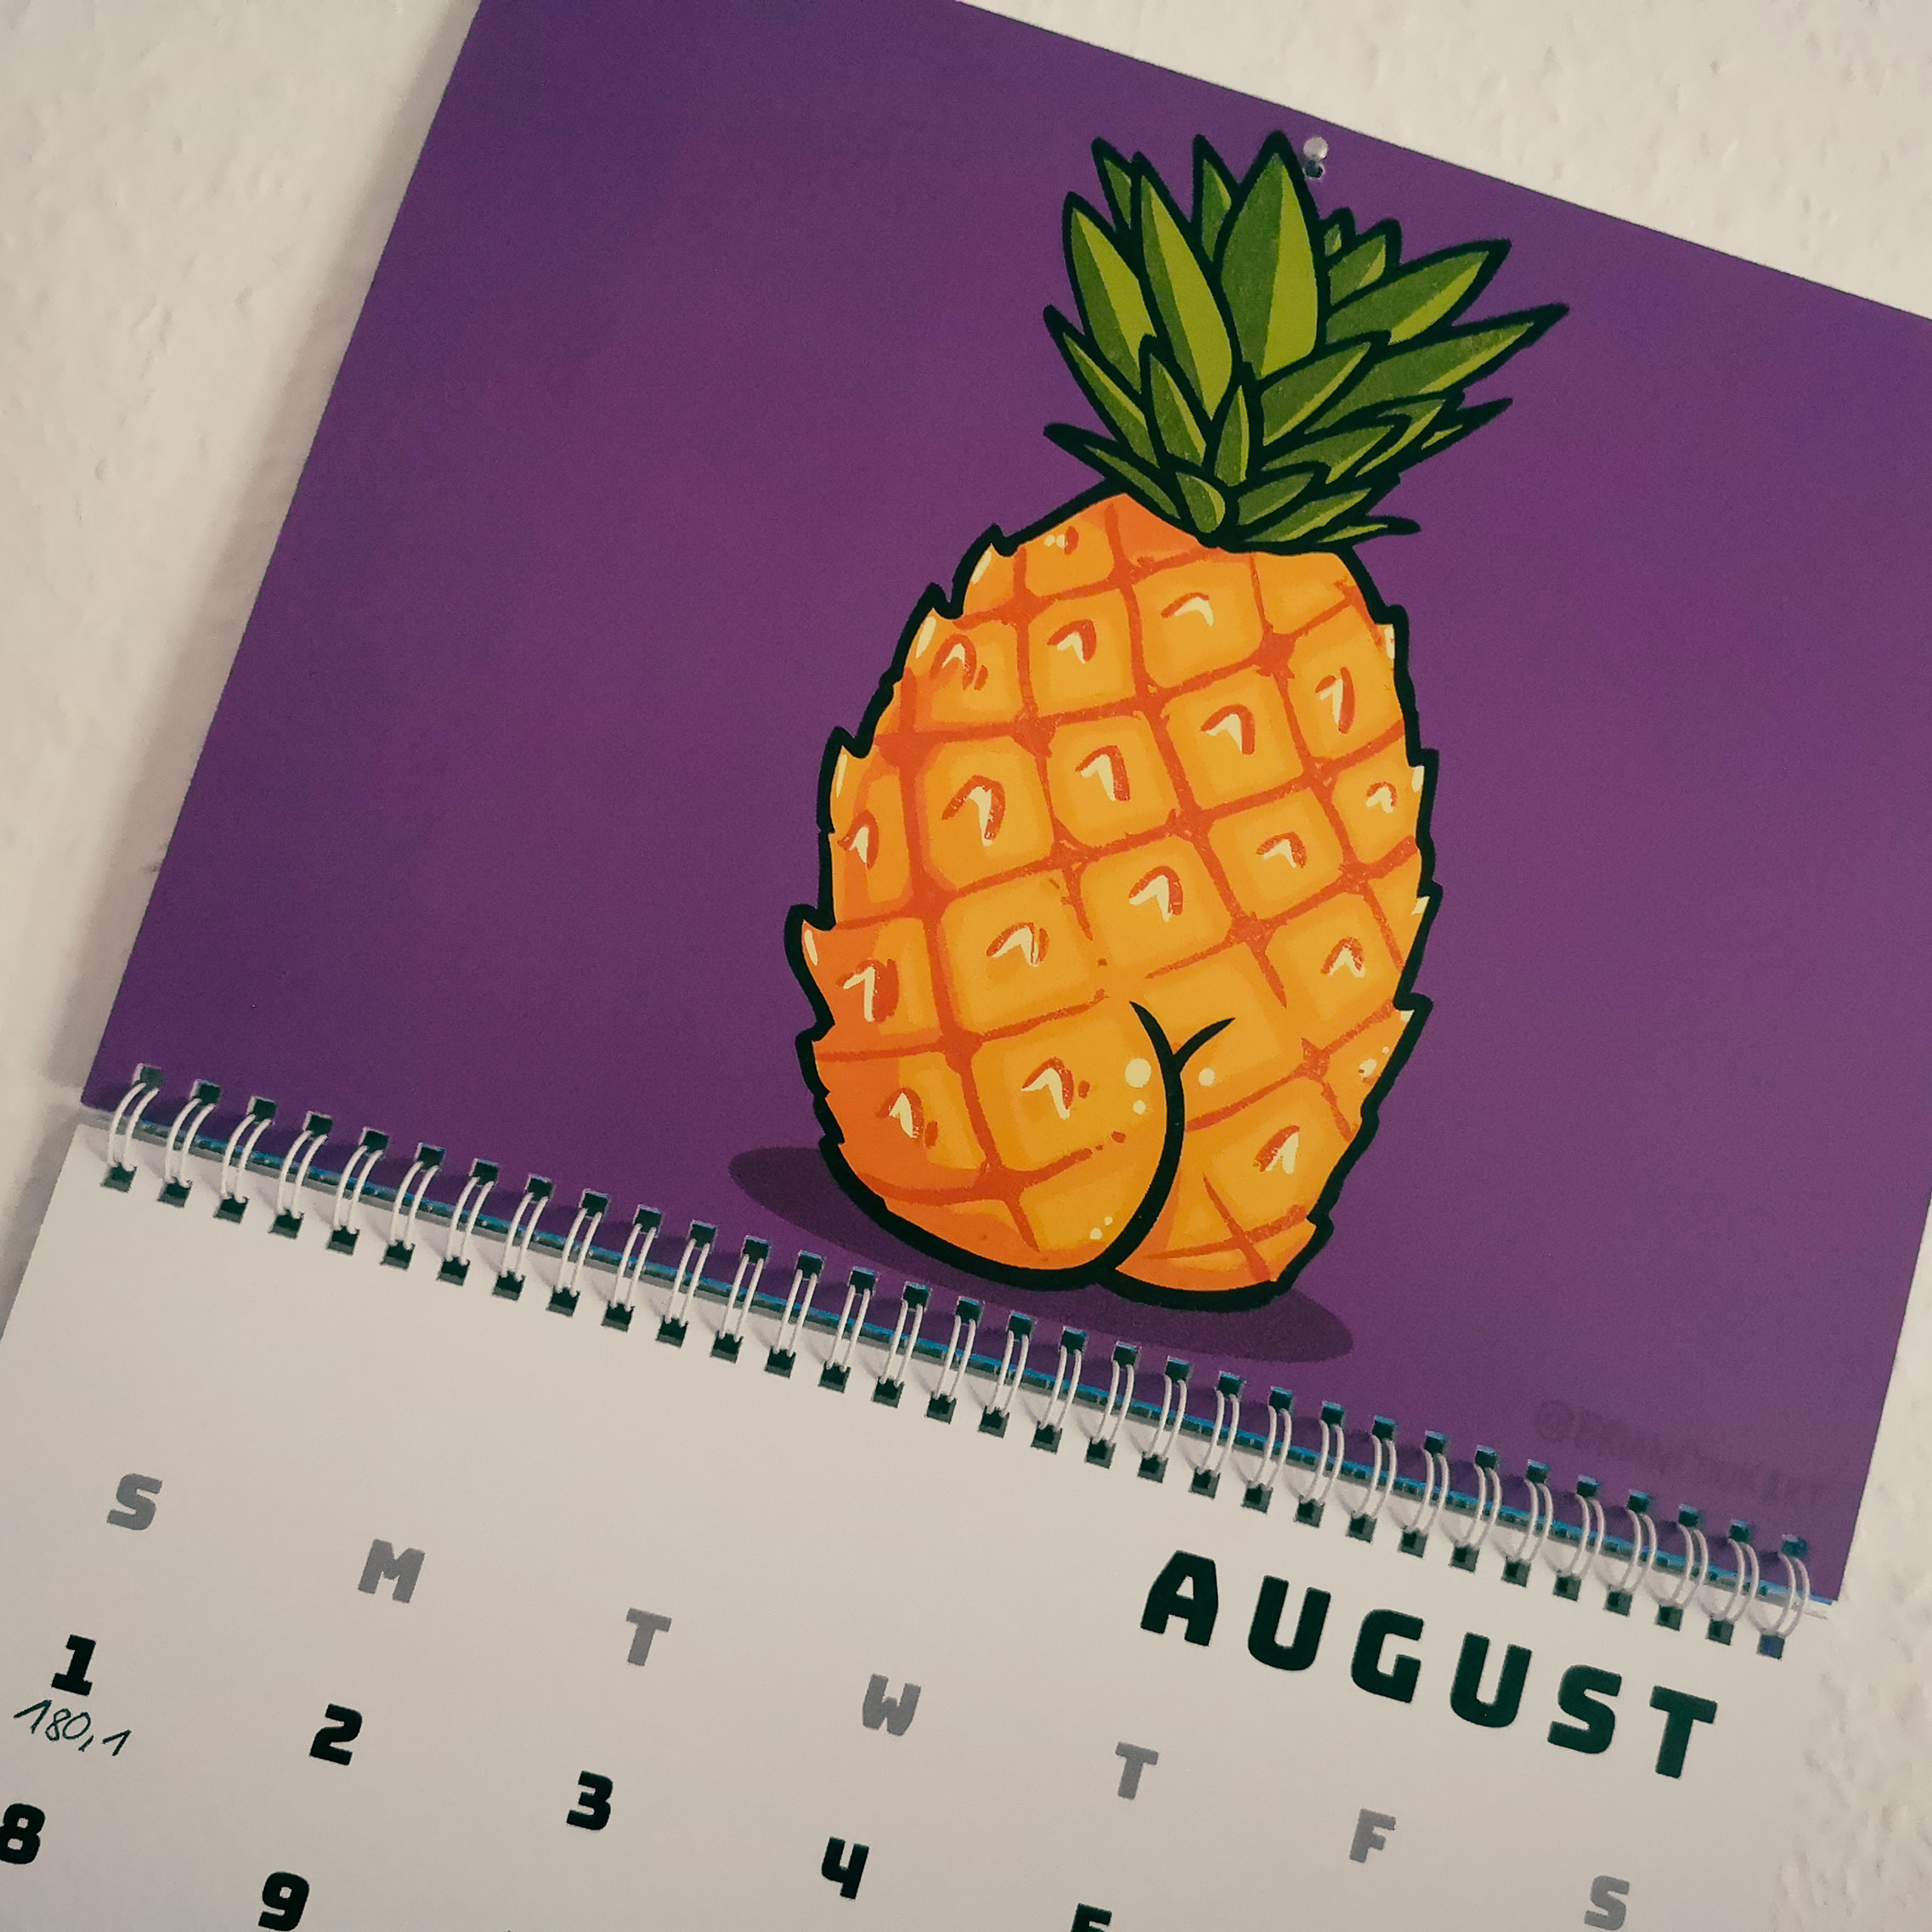 Kalender Butts on Things Brian Cook - Gewichtsupdate August 2021